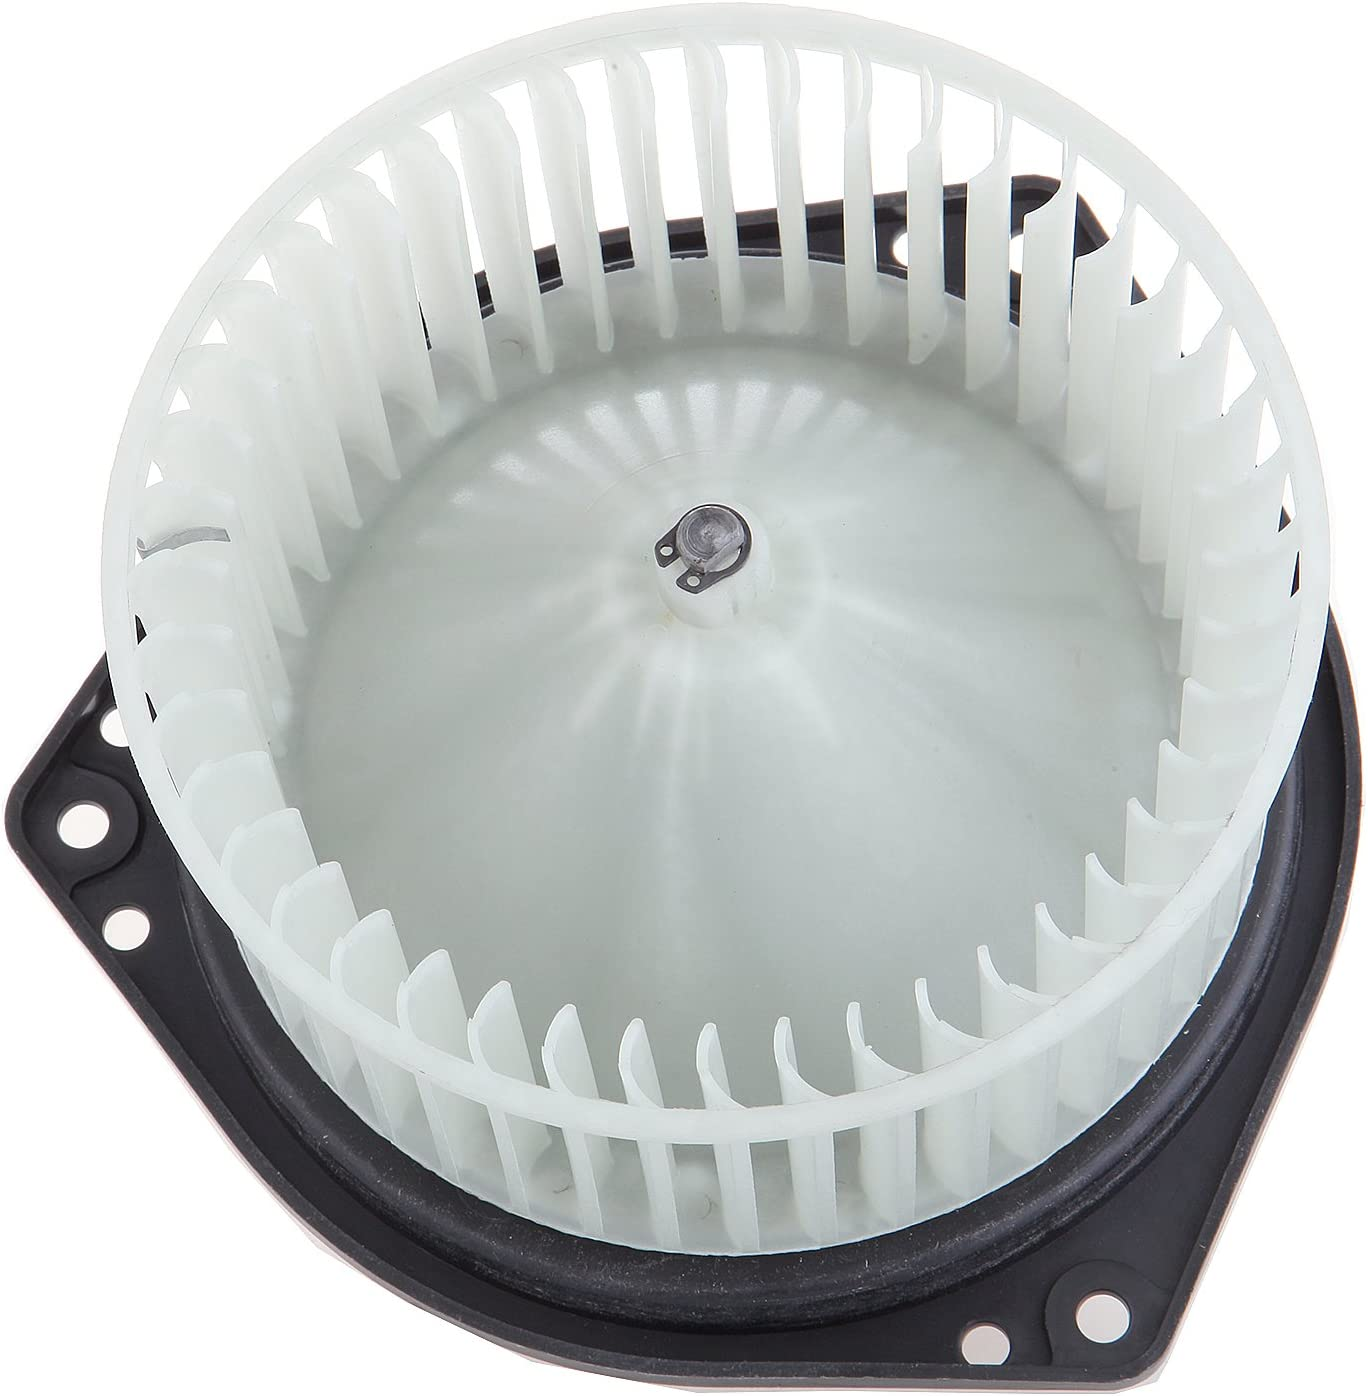 ABS plastic Heater Blower Motor w//Fan Cage ECCPP FIT for 2004-2009 Chevy Aveo 2010 Chevy Aveo 2009 Pontiac G3 2005-2009 Pontiac Wave